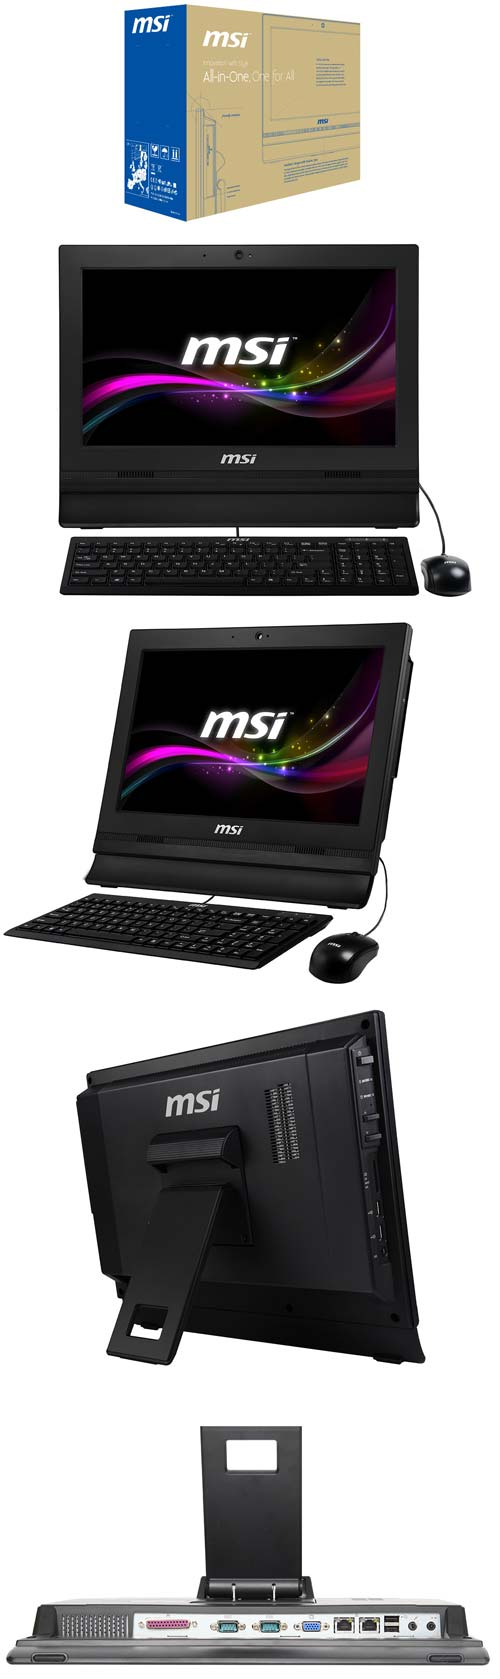 MSI WindTop AP1612 - новое All-in-one решение